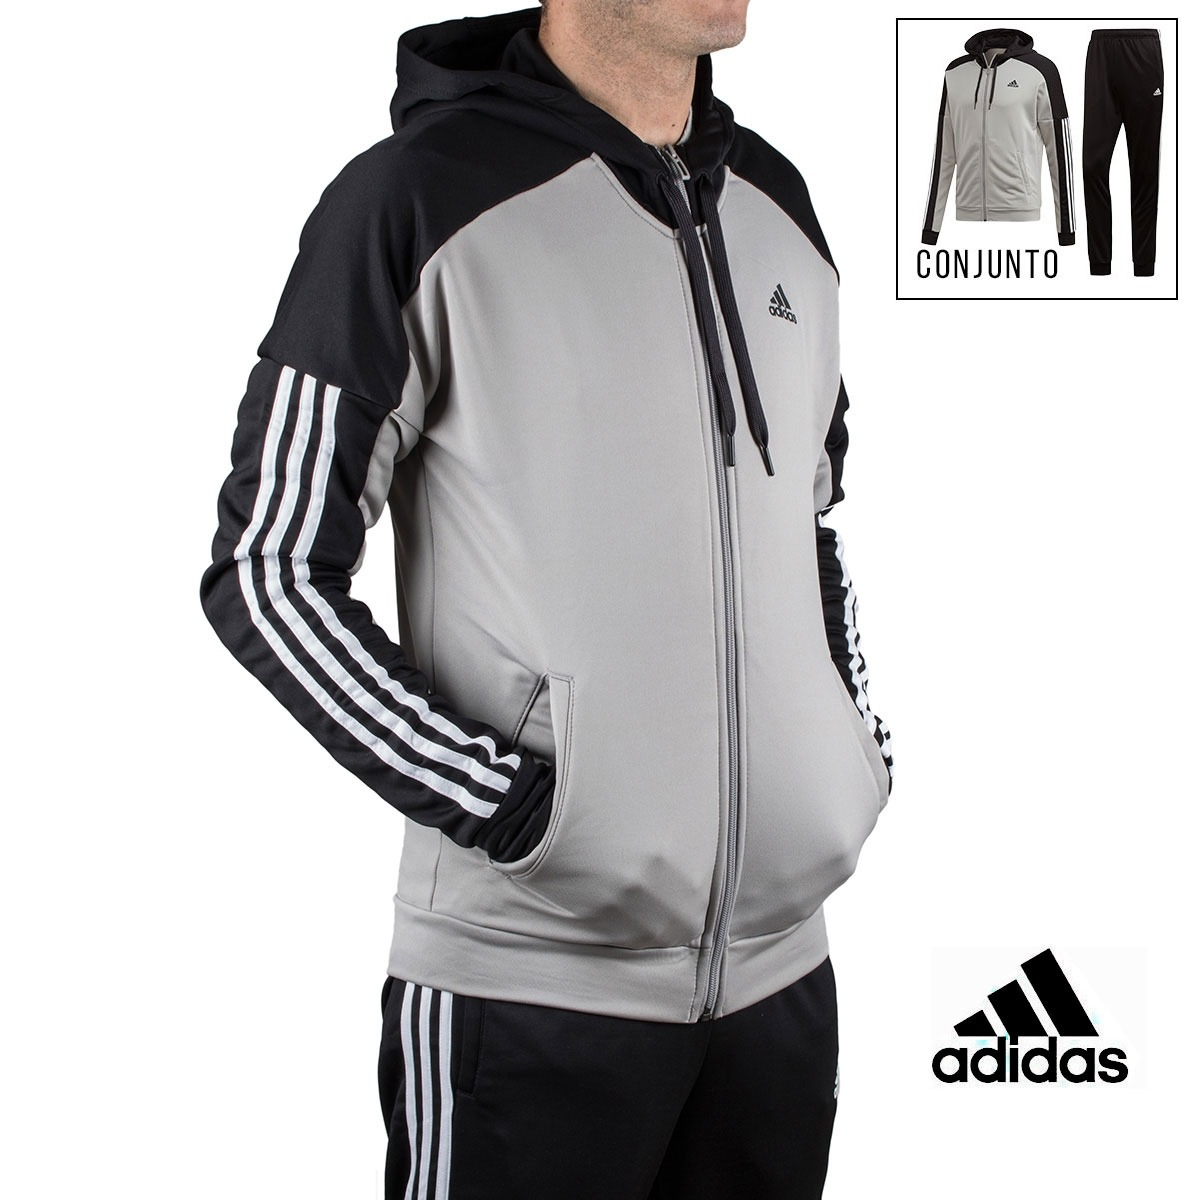 Adidas chándal conjunto Game Time Gris Negro hombre